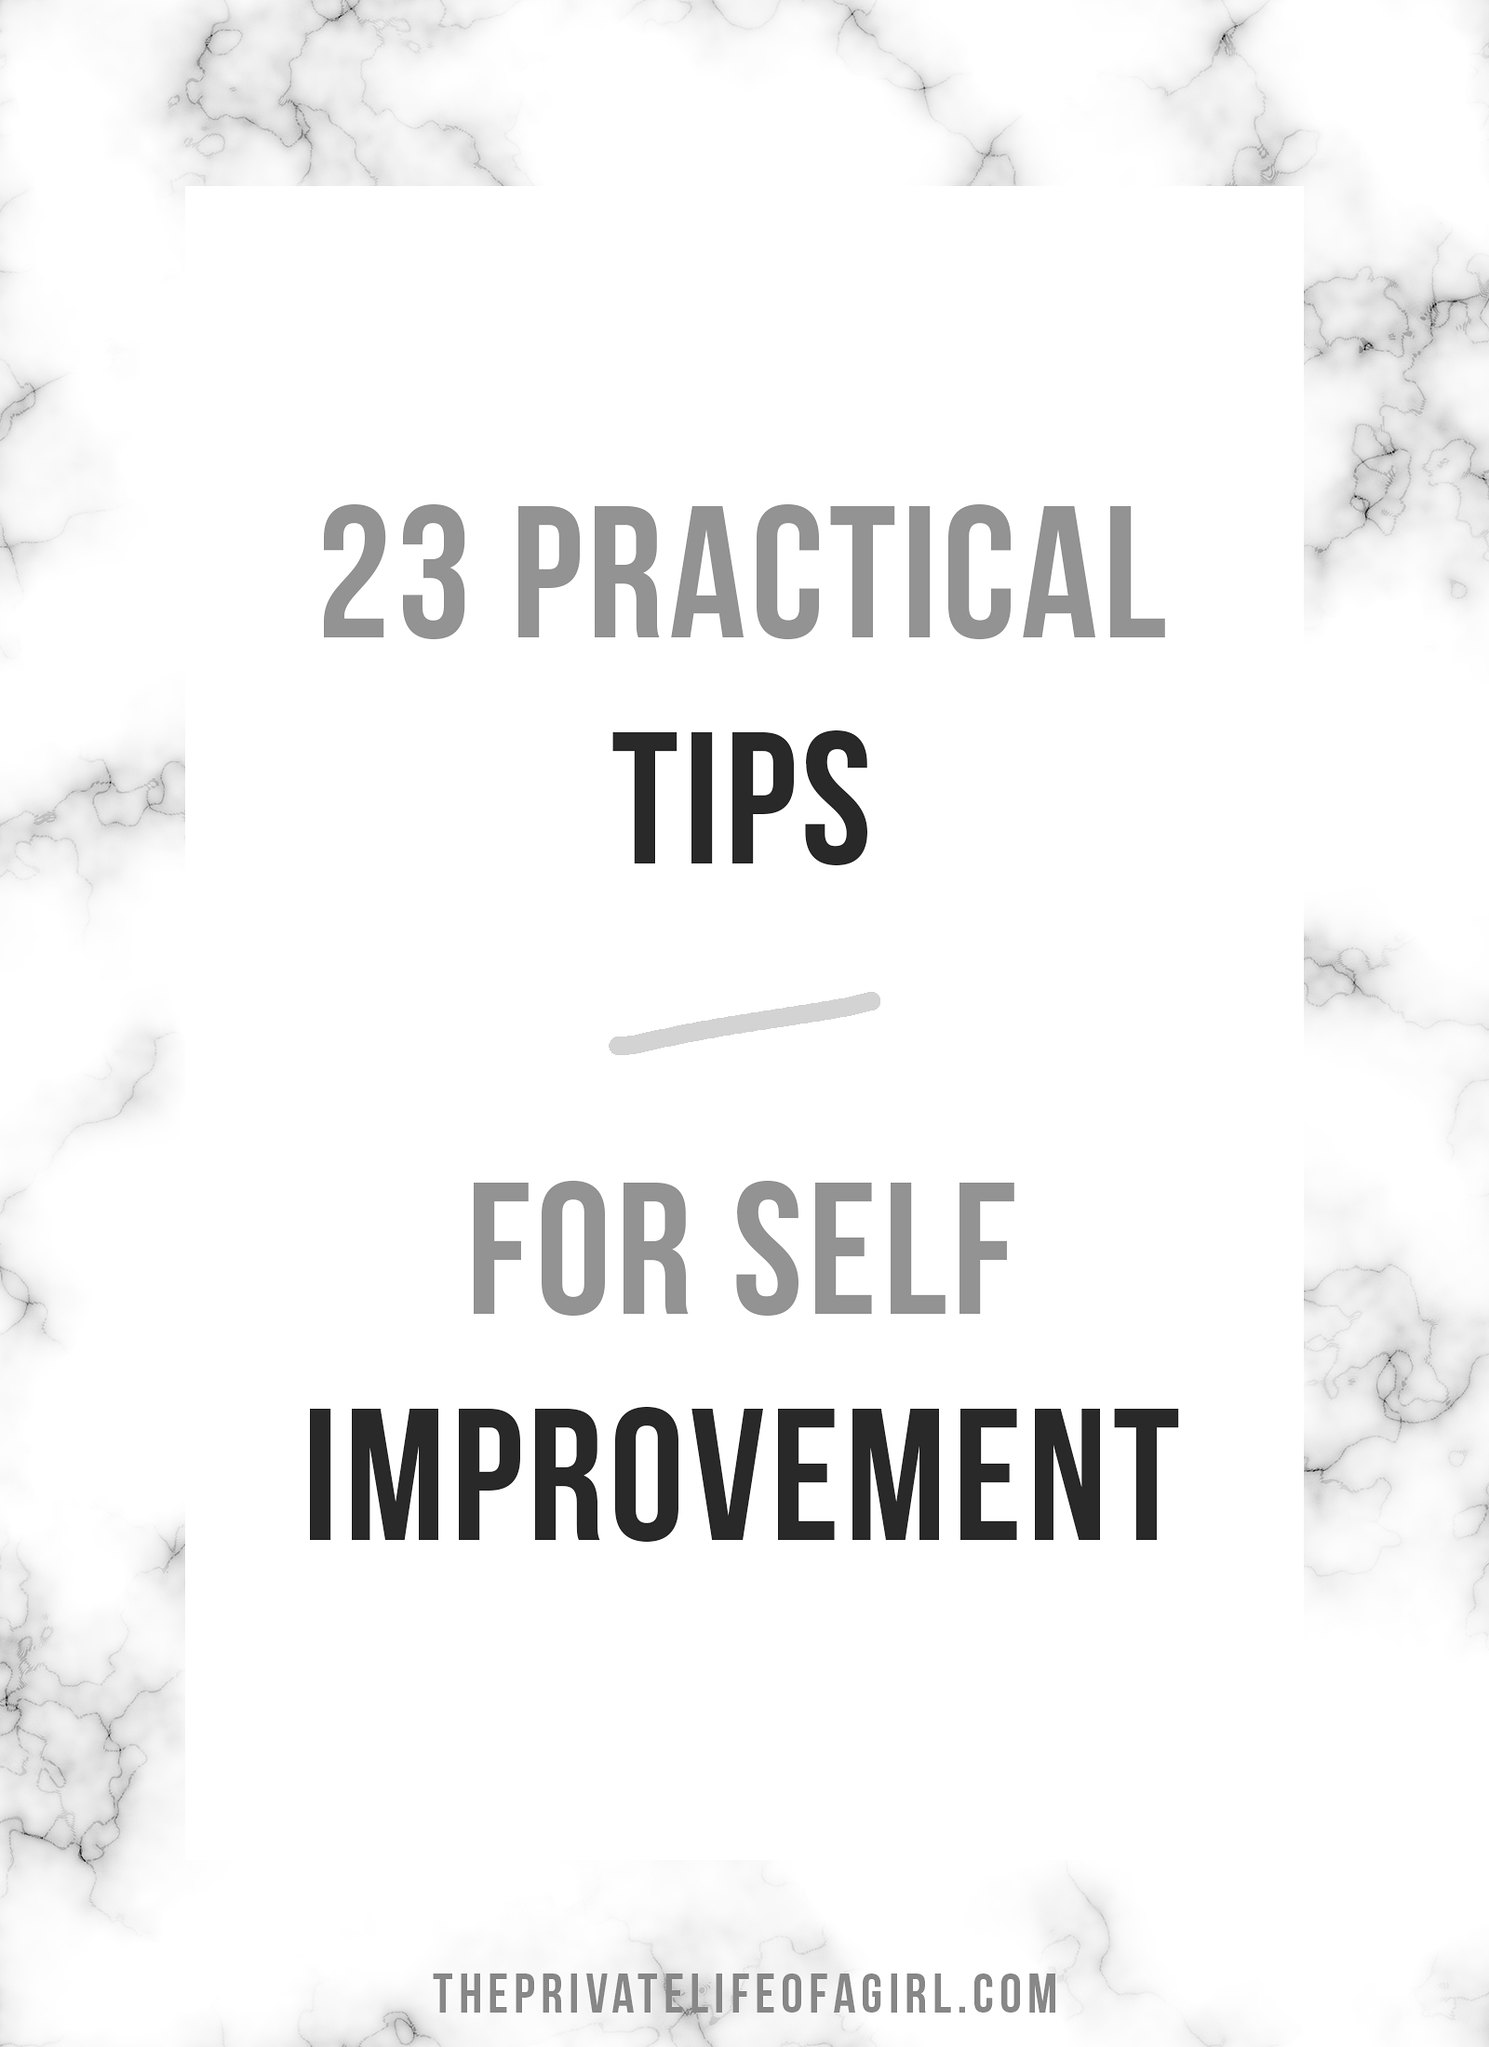 23 Practical Self-Improvement Tips